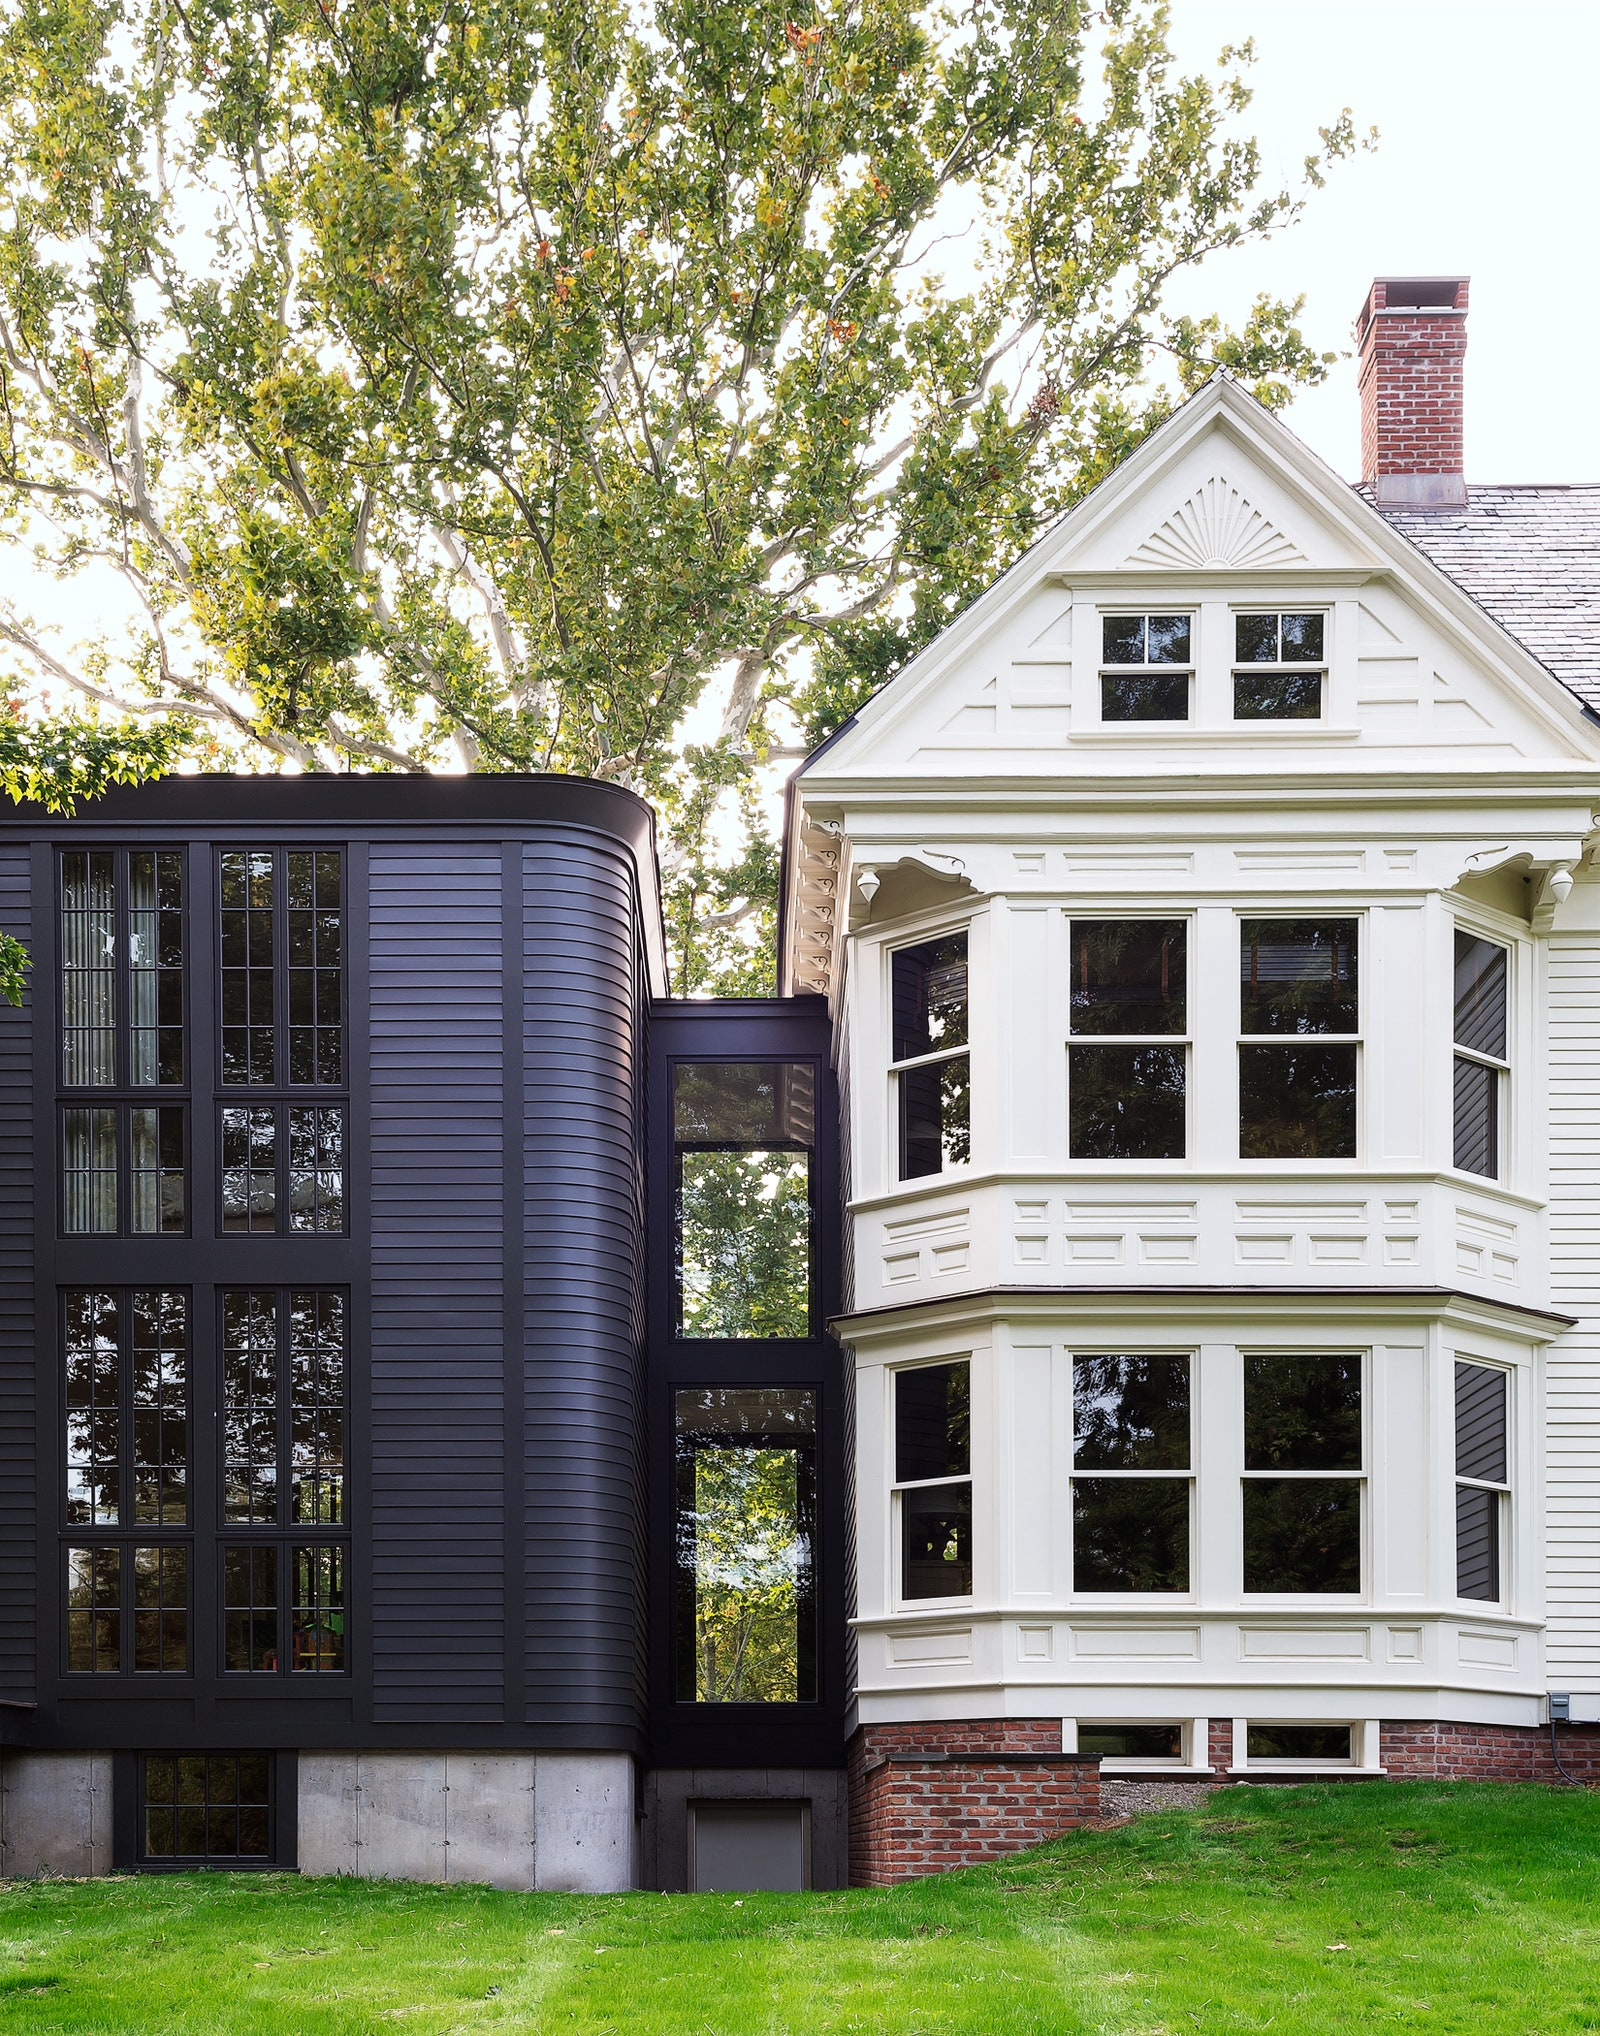 A centuryold sycamore shades the Eastlake Victorian mansion whose renovation and expansion was completed by Workstead.